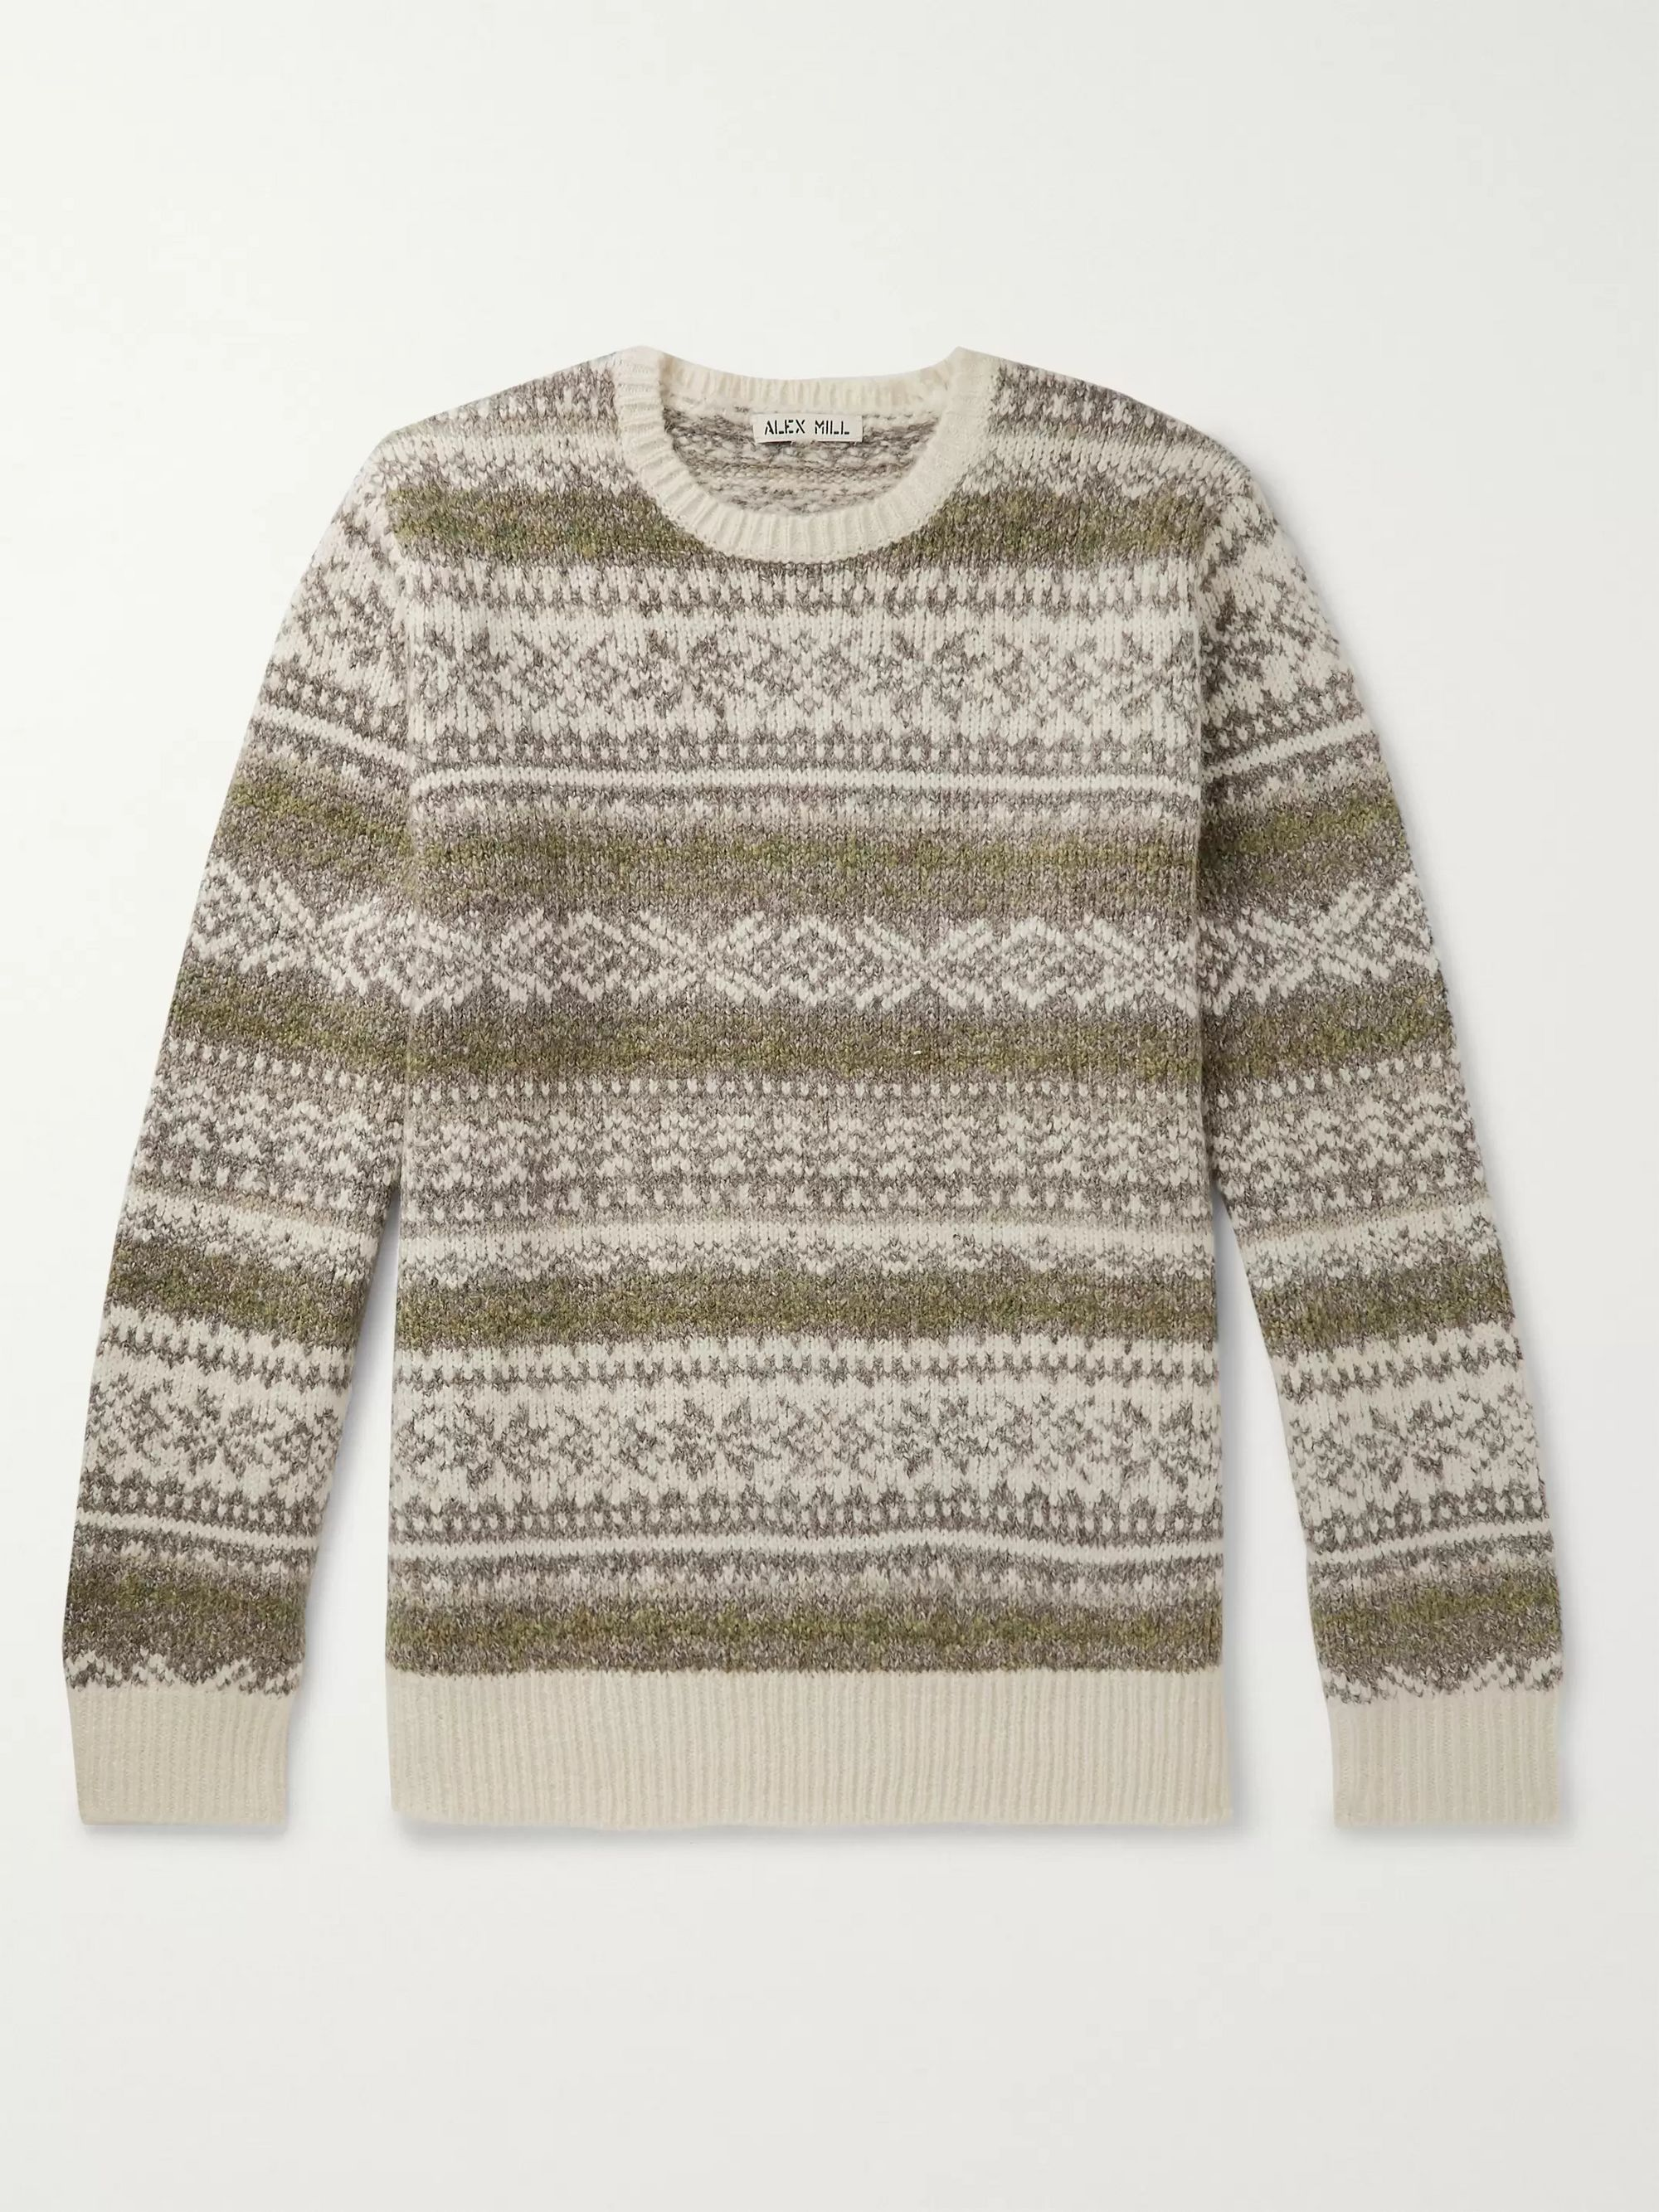 Alex Mill Fair Isle Knitted Sweater